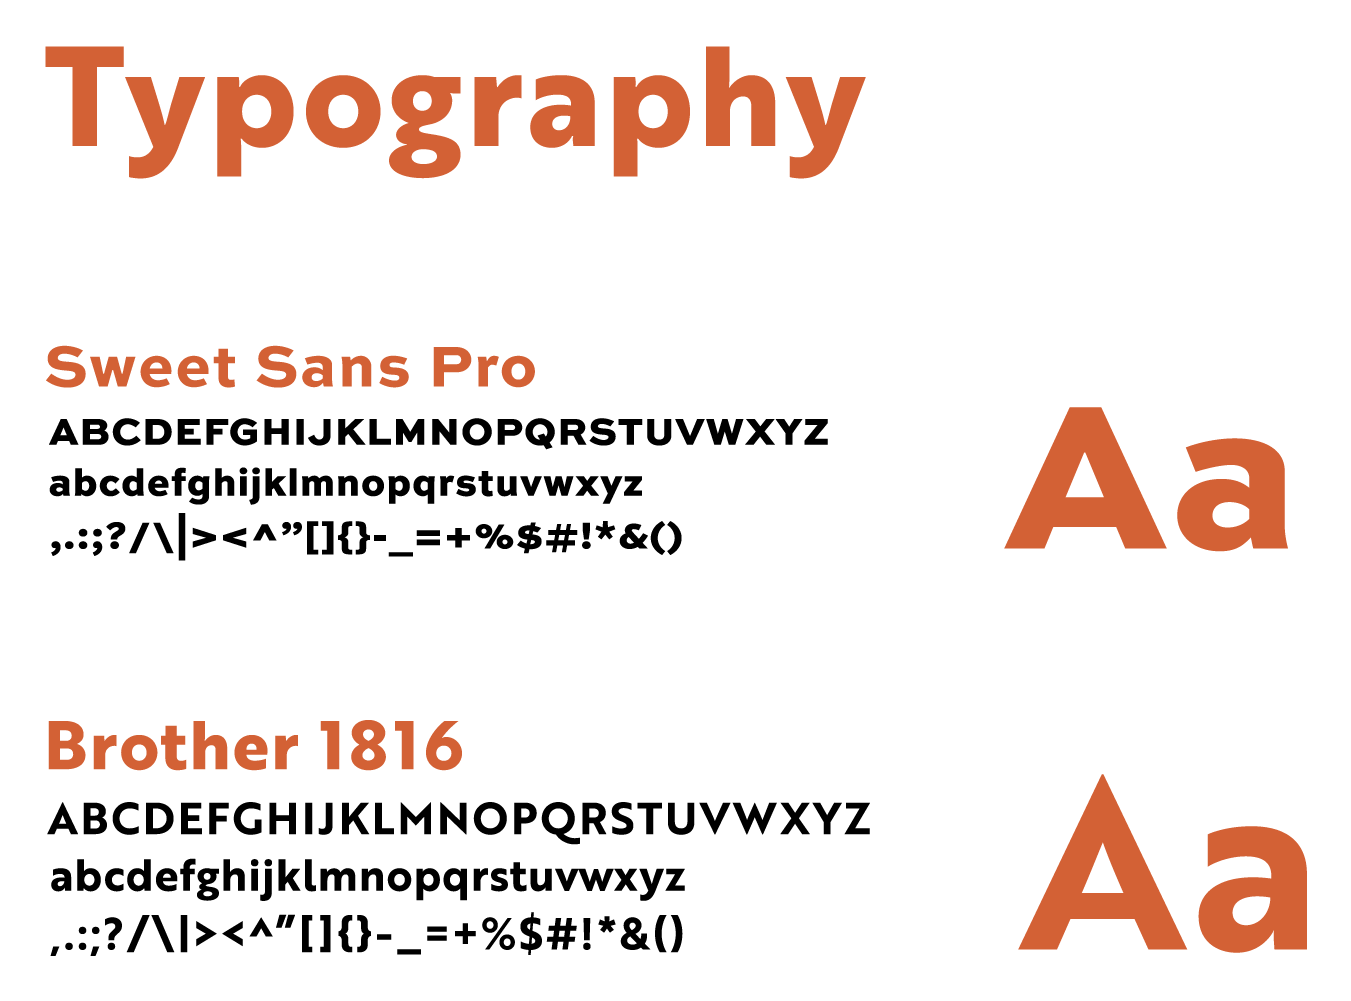 Fonts used for Hidden treks, Sweet sans pro and Brother 1816